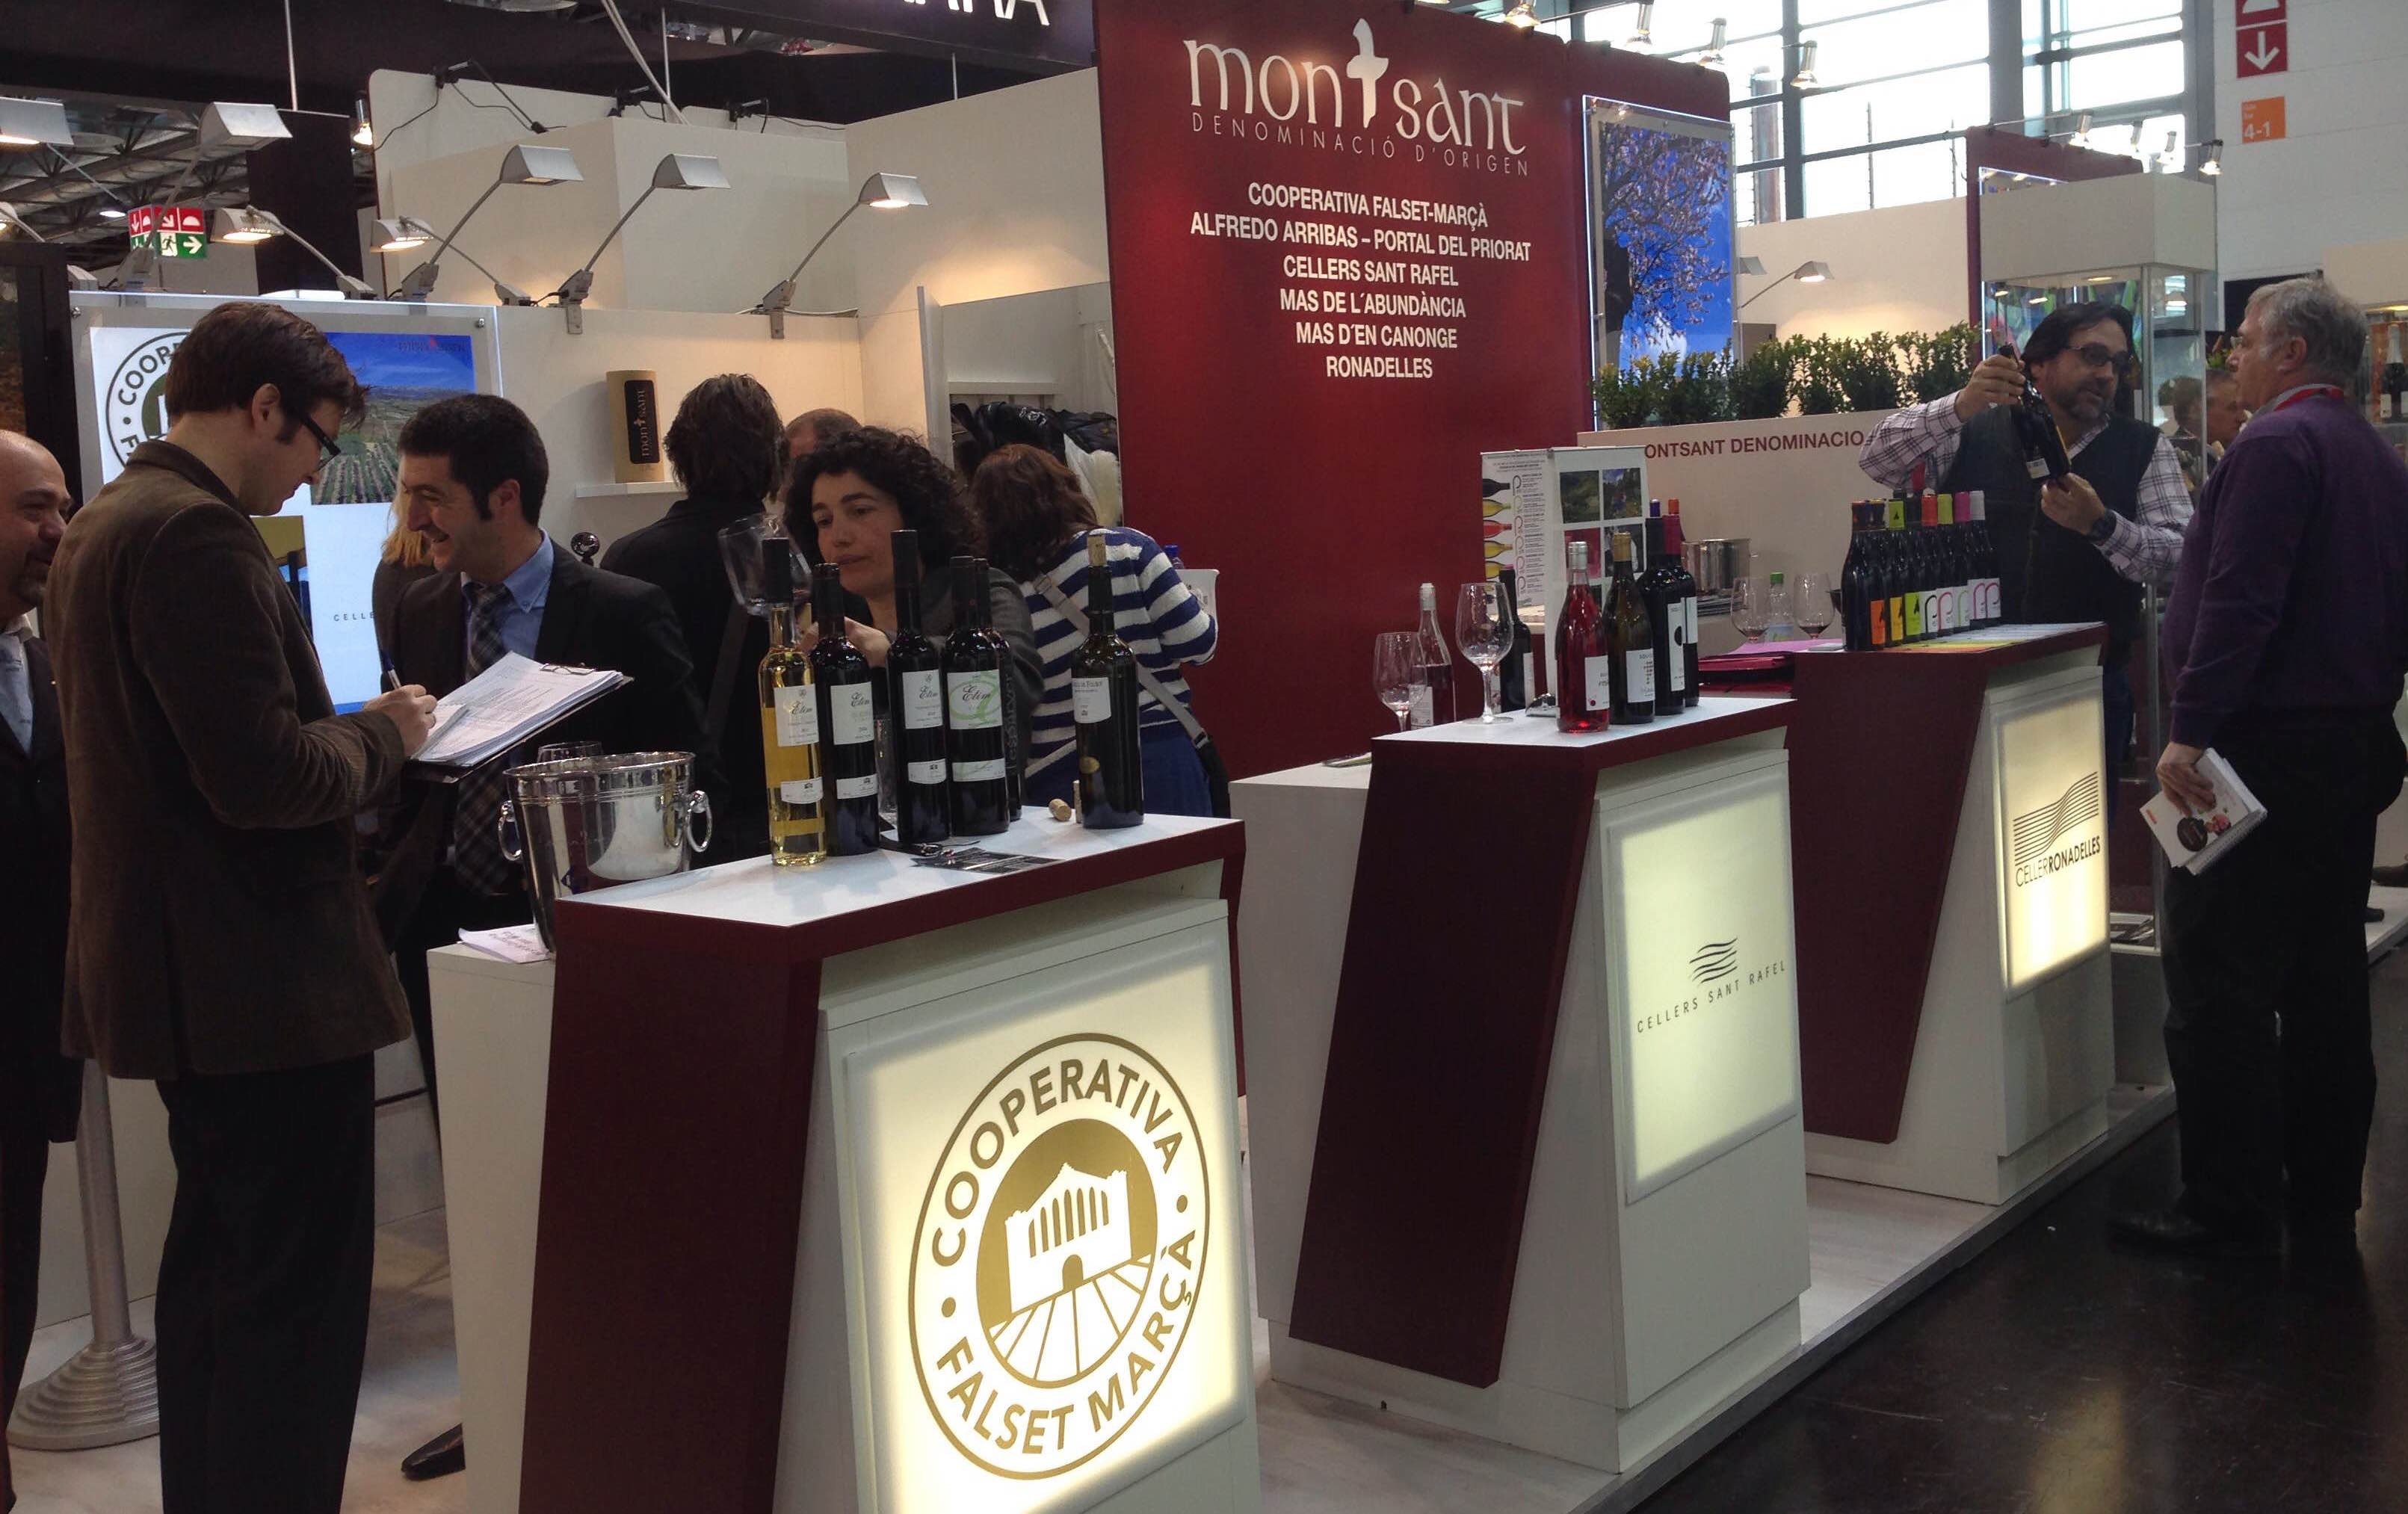 La DO Montsant presente en Prowein 2015